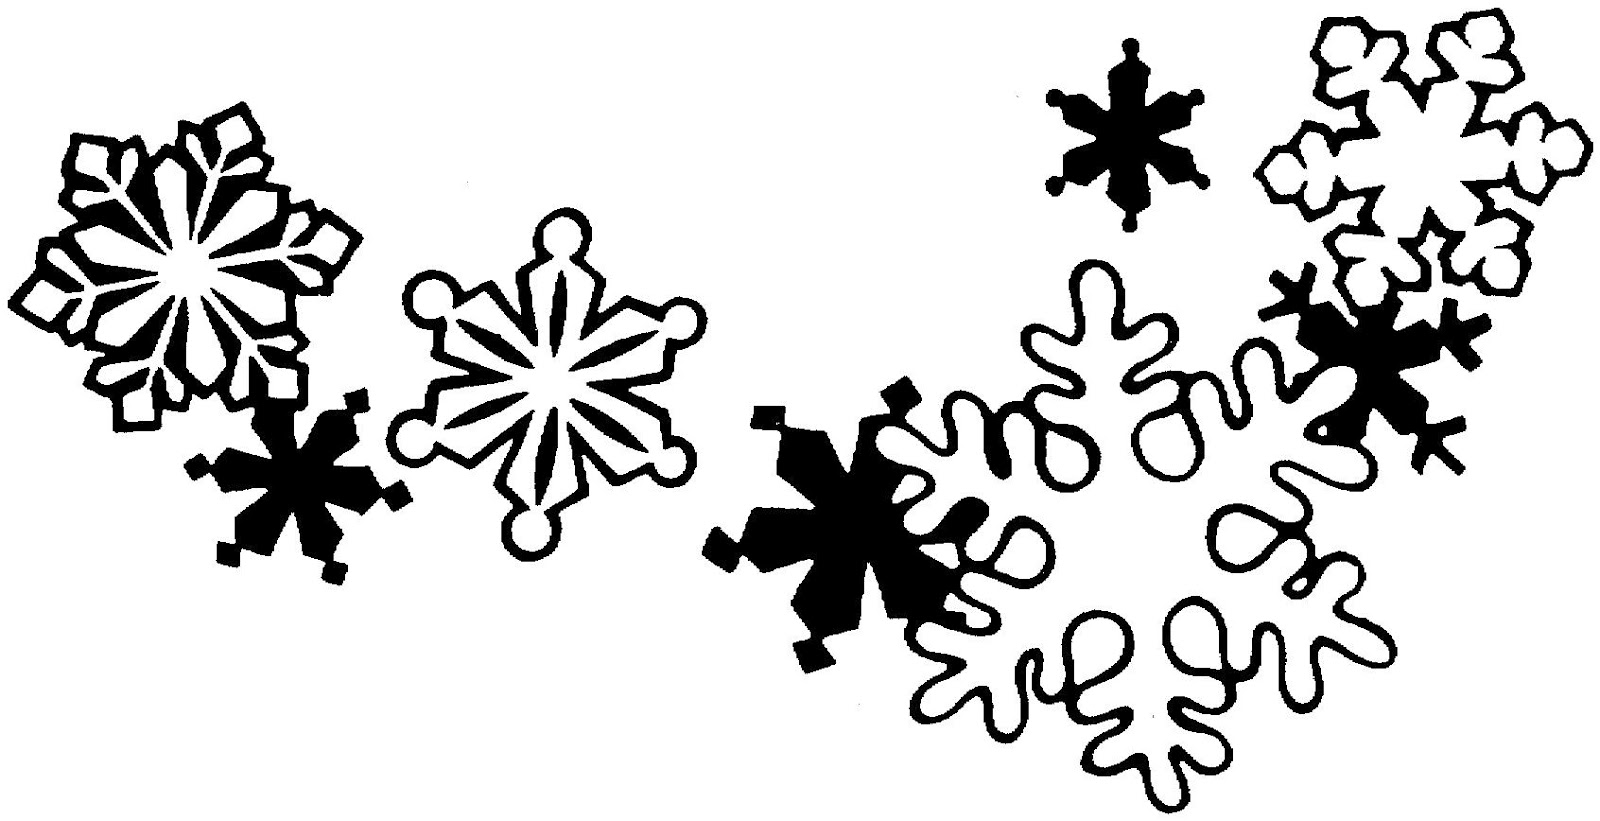 Snowflake black and white clipart.